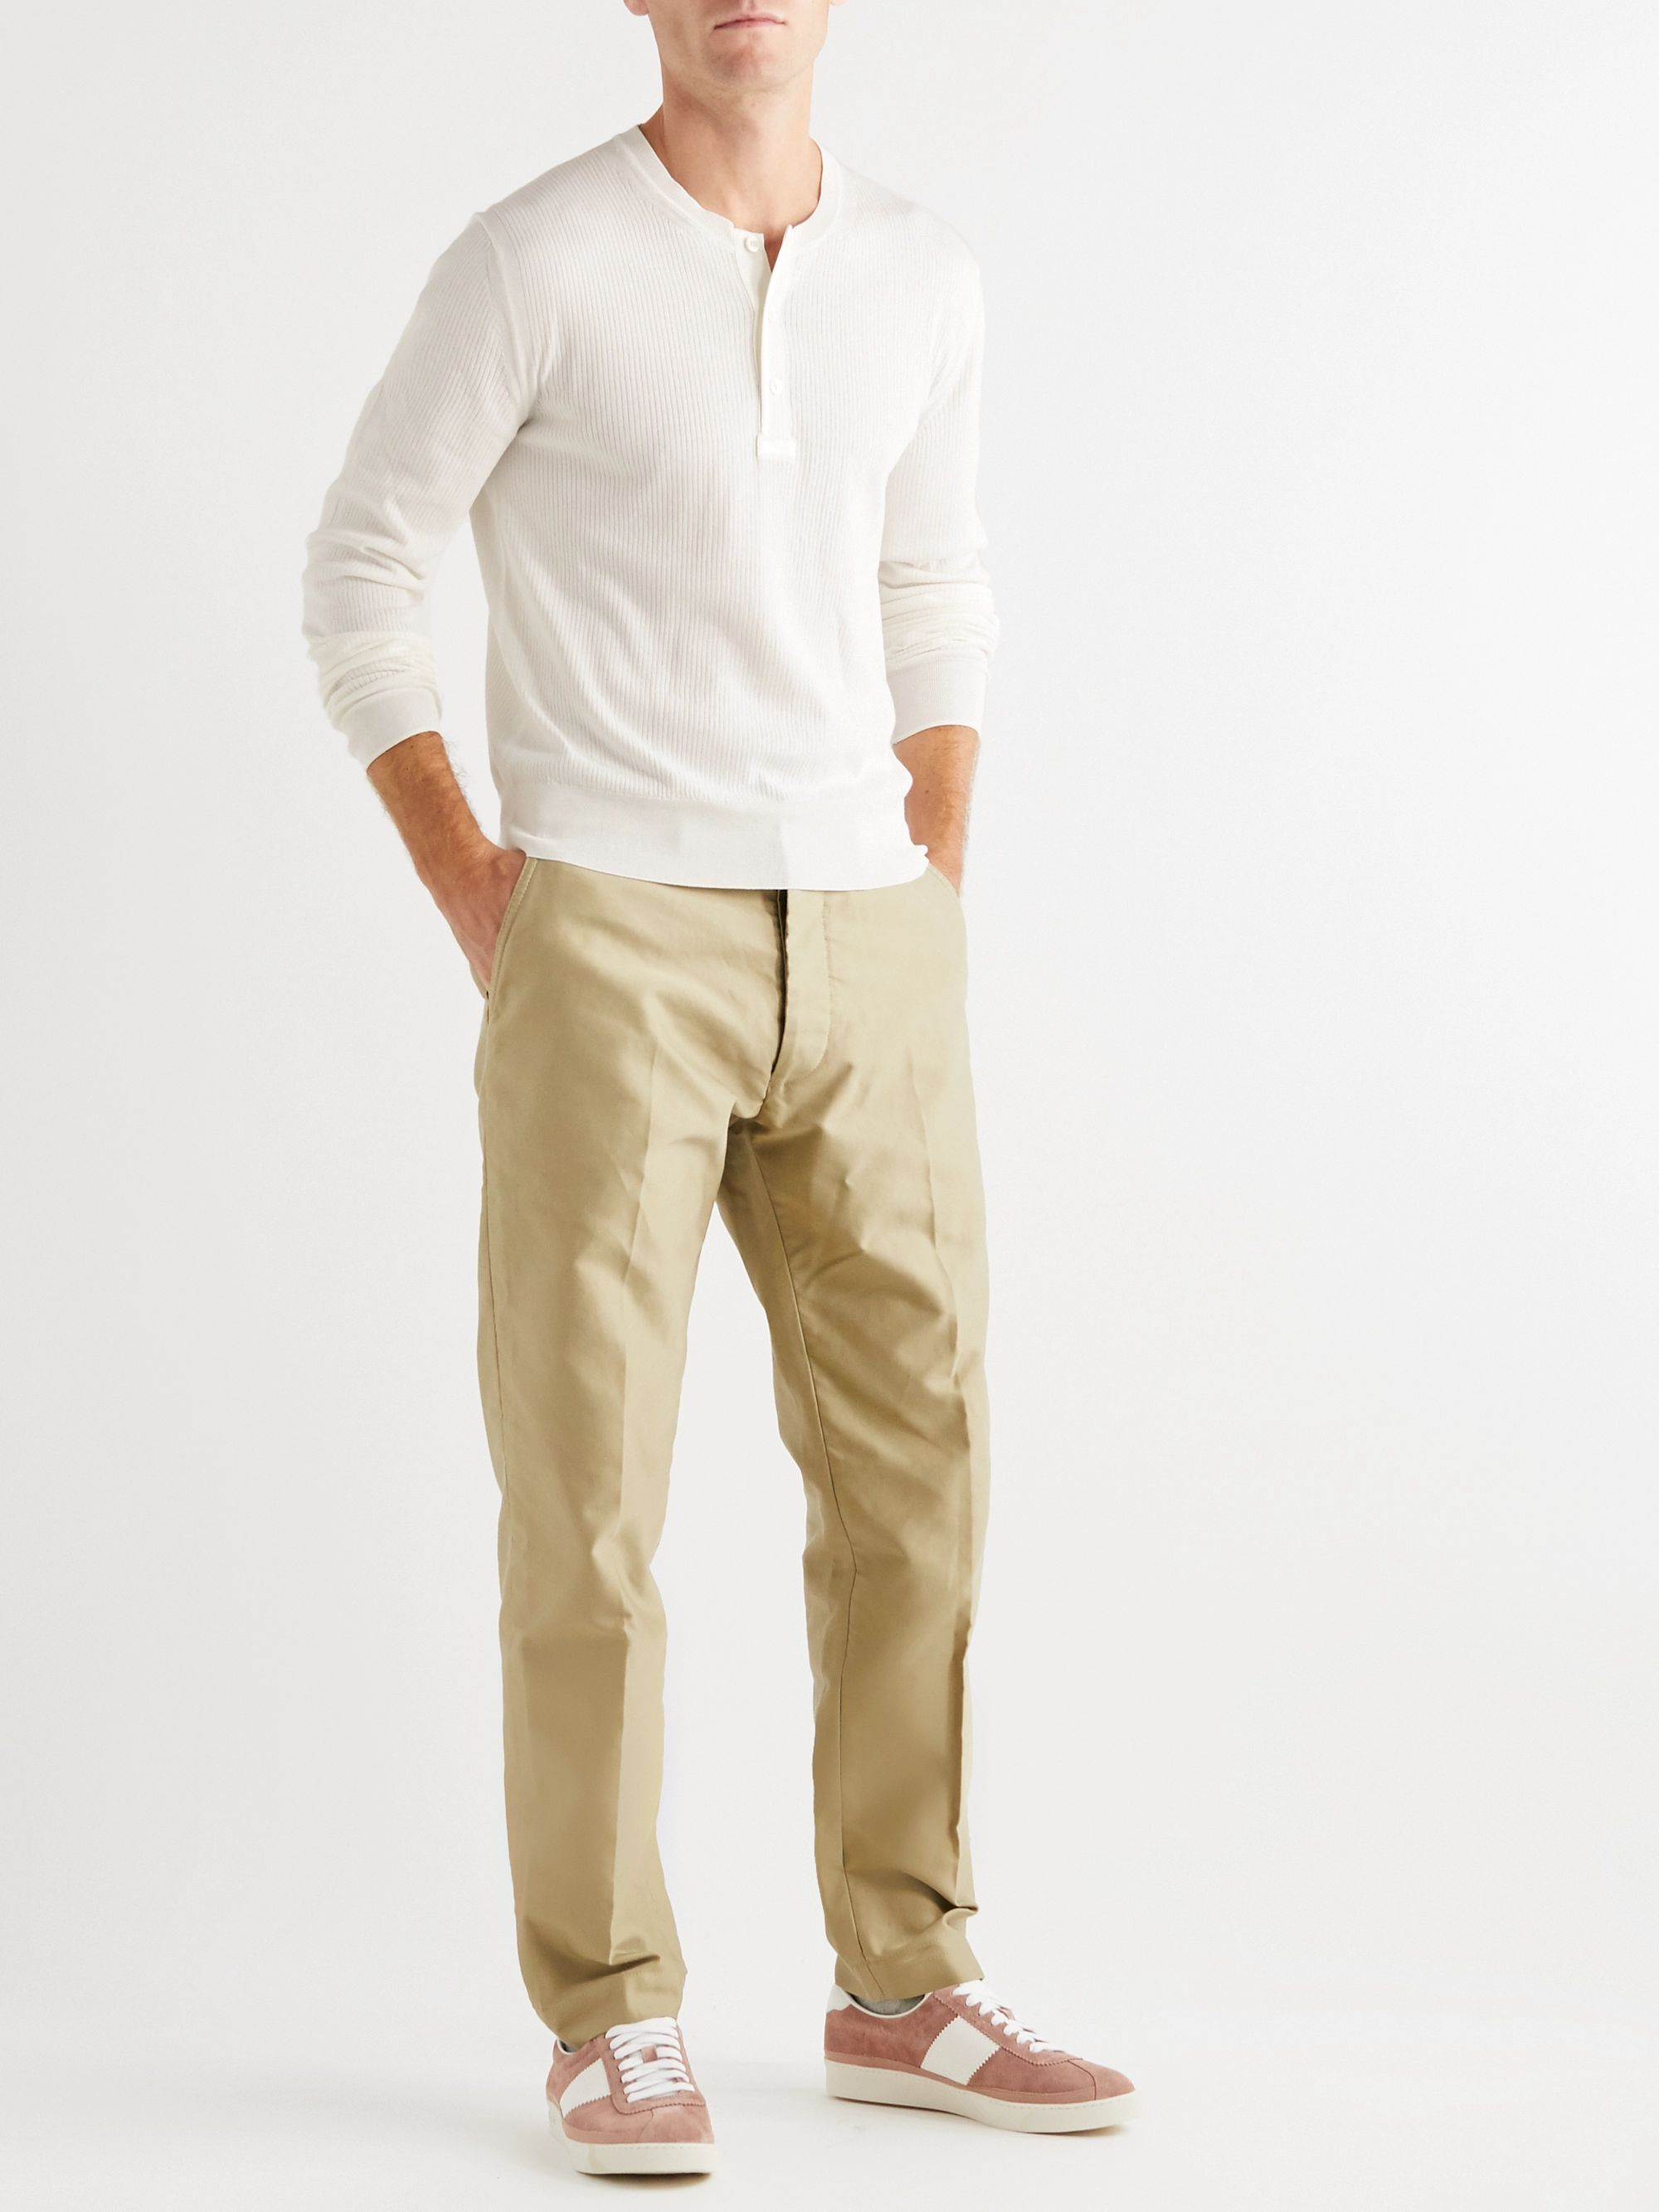 TOM FORD Slim-Fit Ribbed Cotton and Silk-Blend Henley T-Shirt